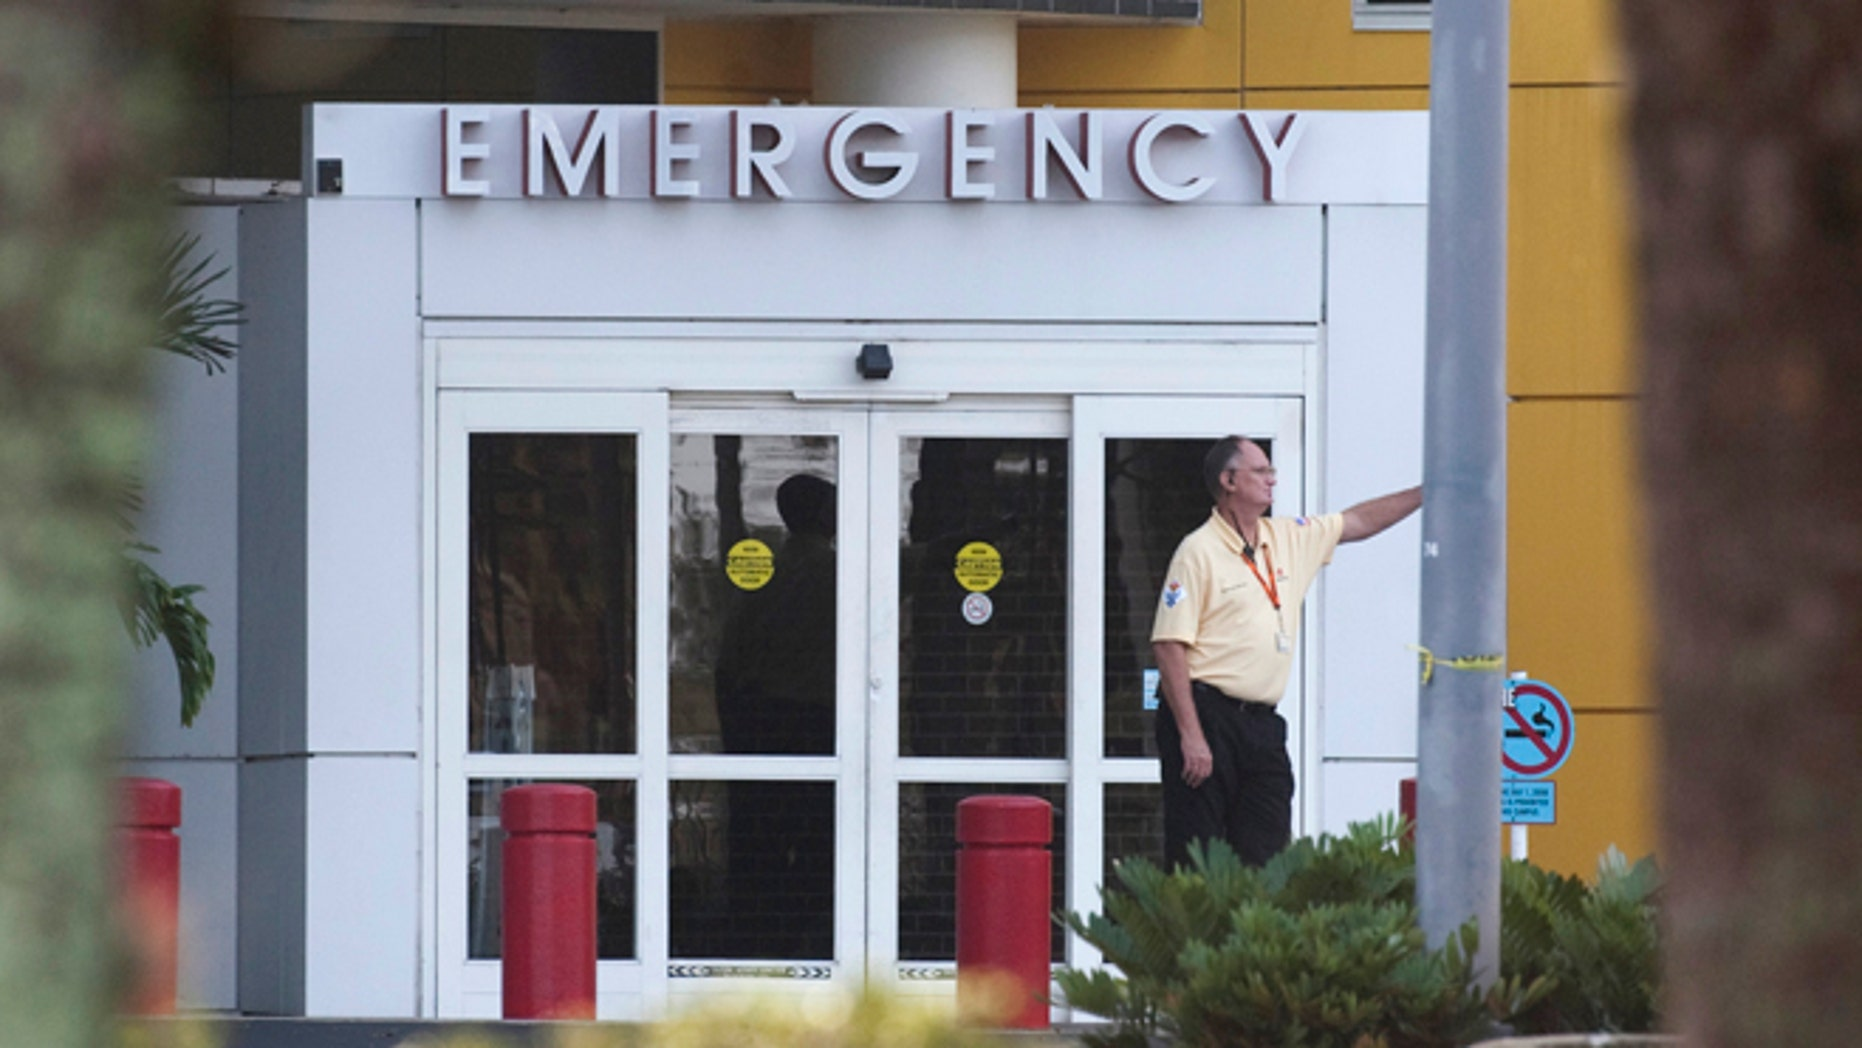 FILE: December 8, 2009: A man stands outside the emergency room of Health Central Hospital, in Occoee, Florida.